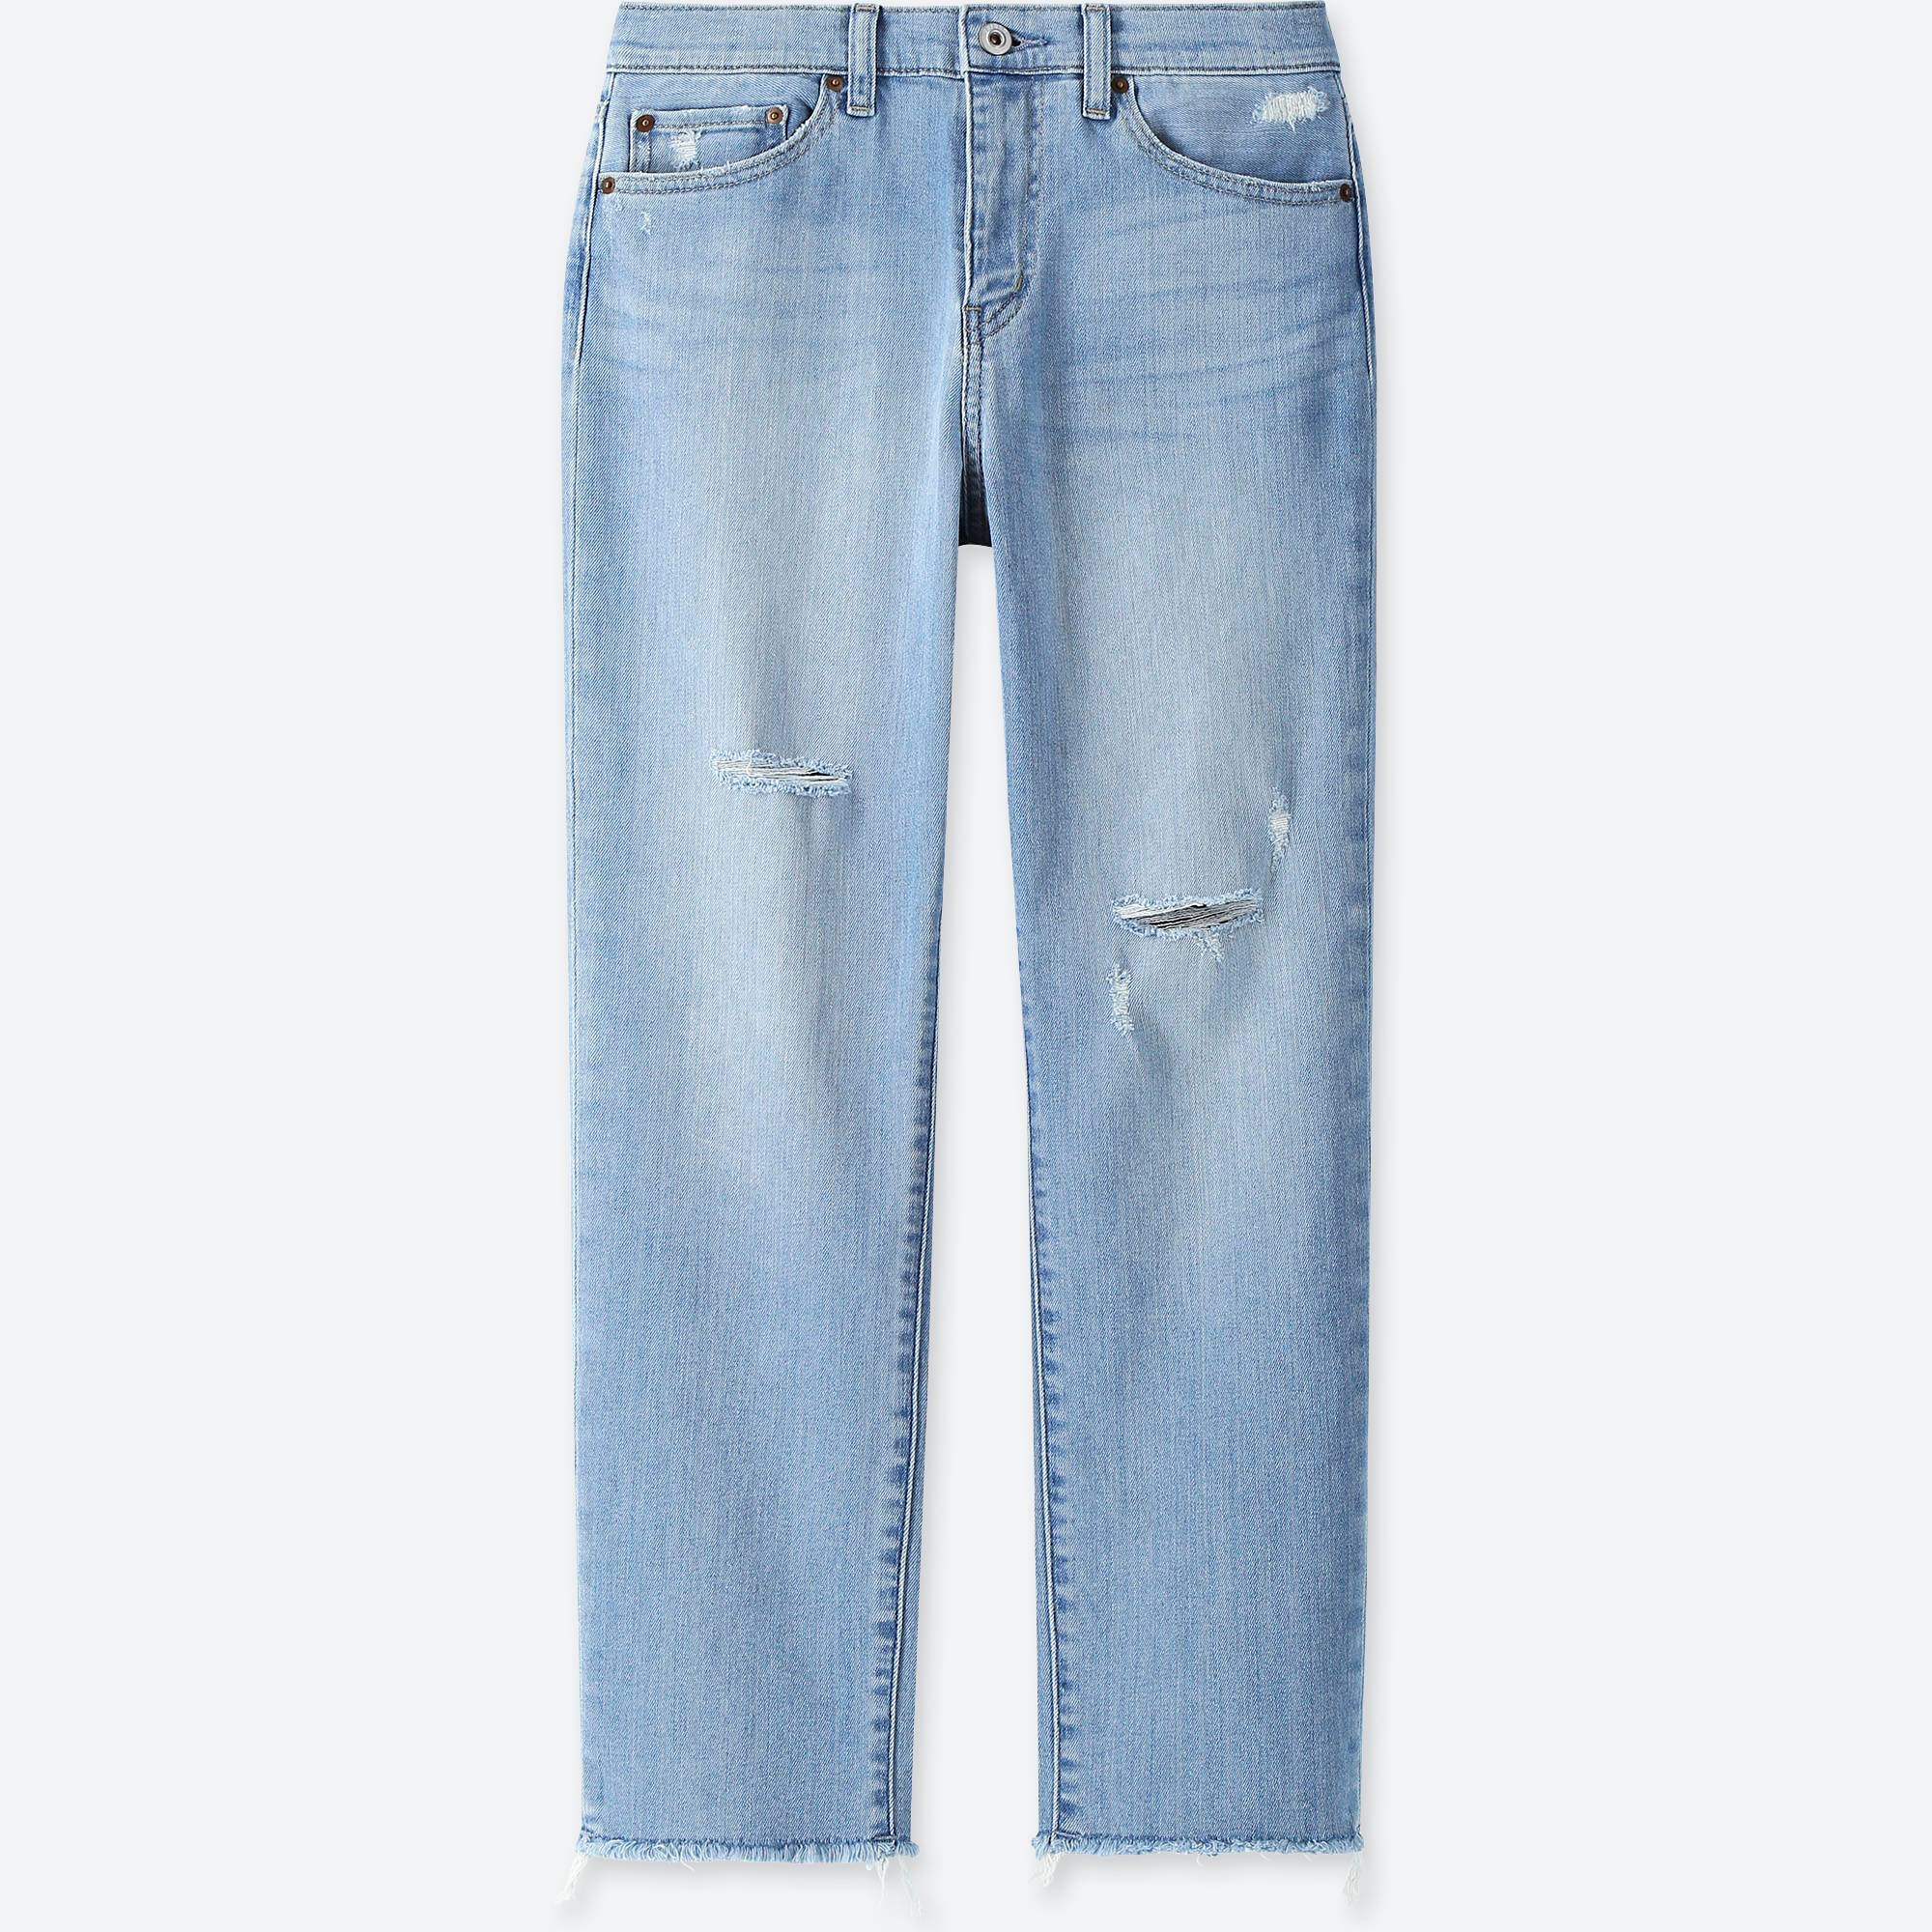 UNIQLO / Jeans women high-rise boyfriend-fit jeans